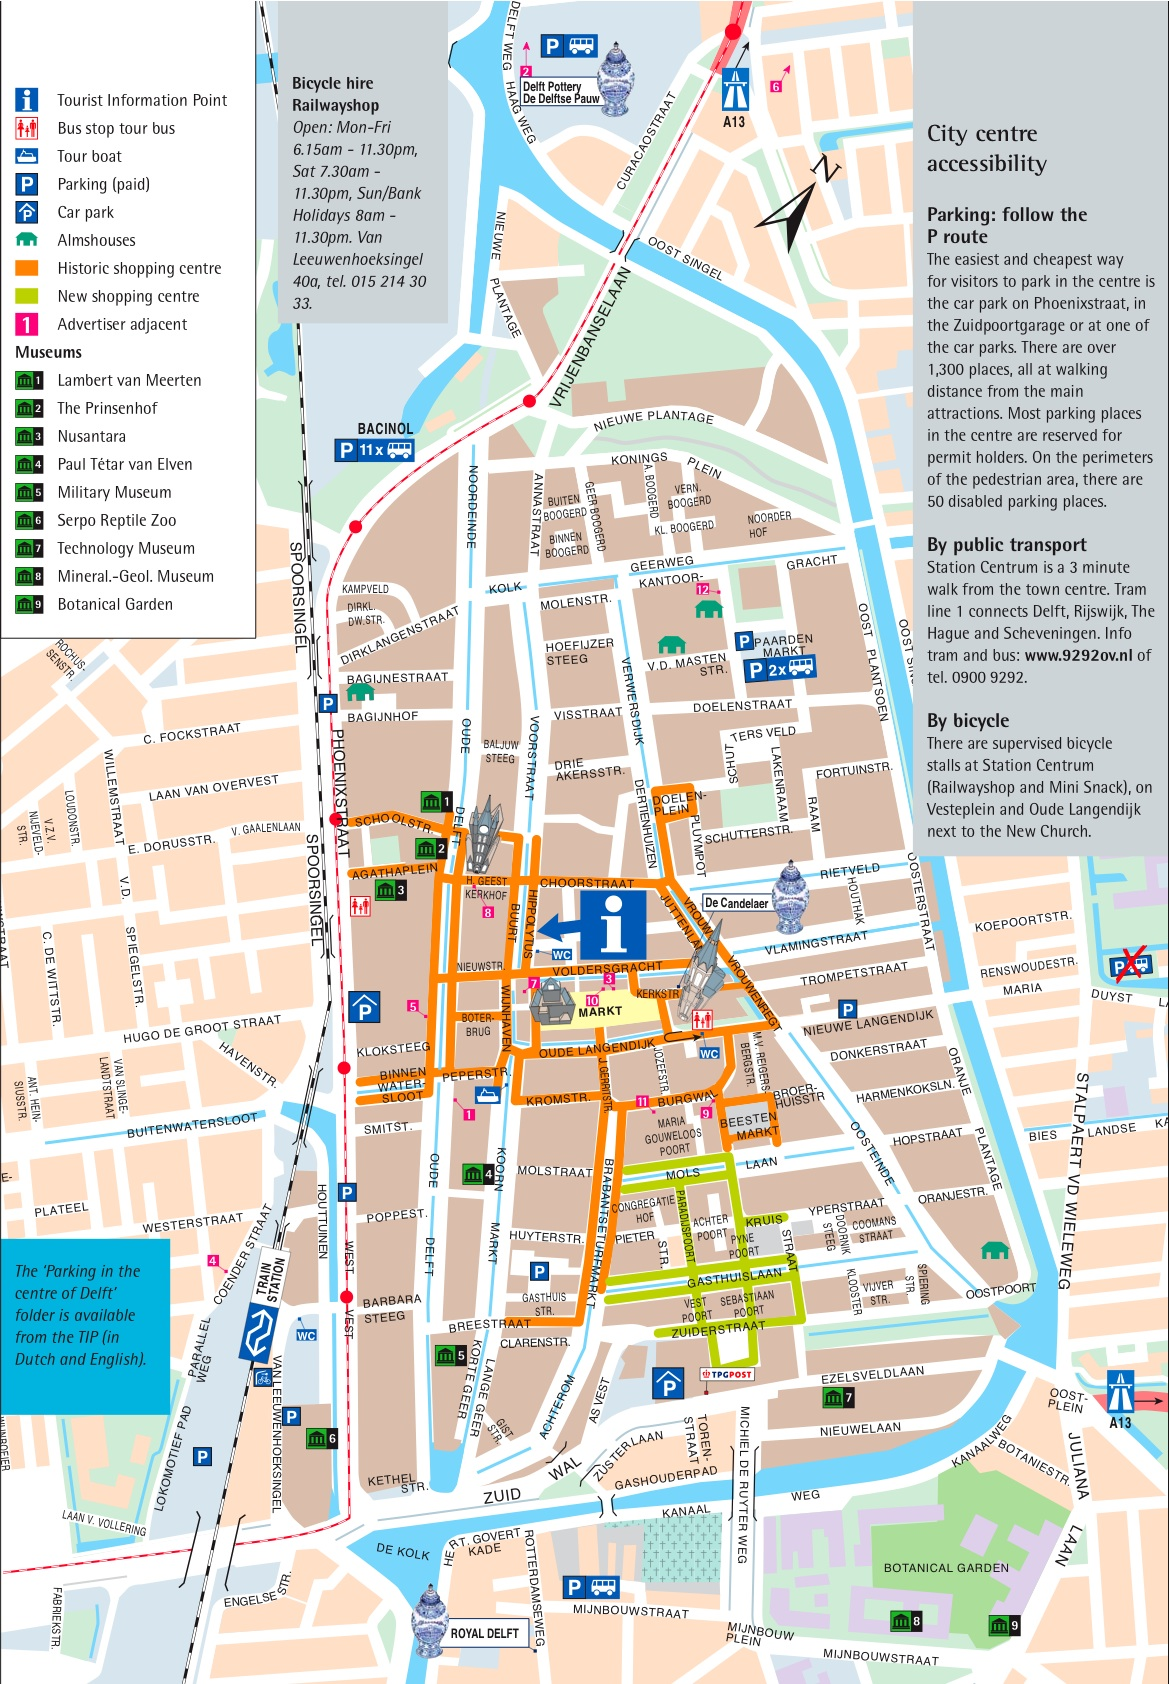 Venlo Stadtplan Large Delft Maps For Free Download And Print | High